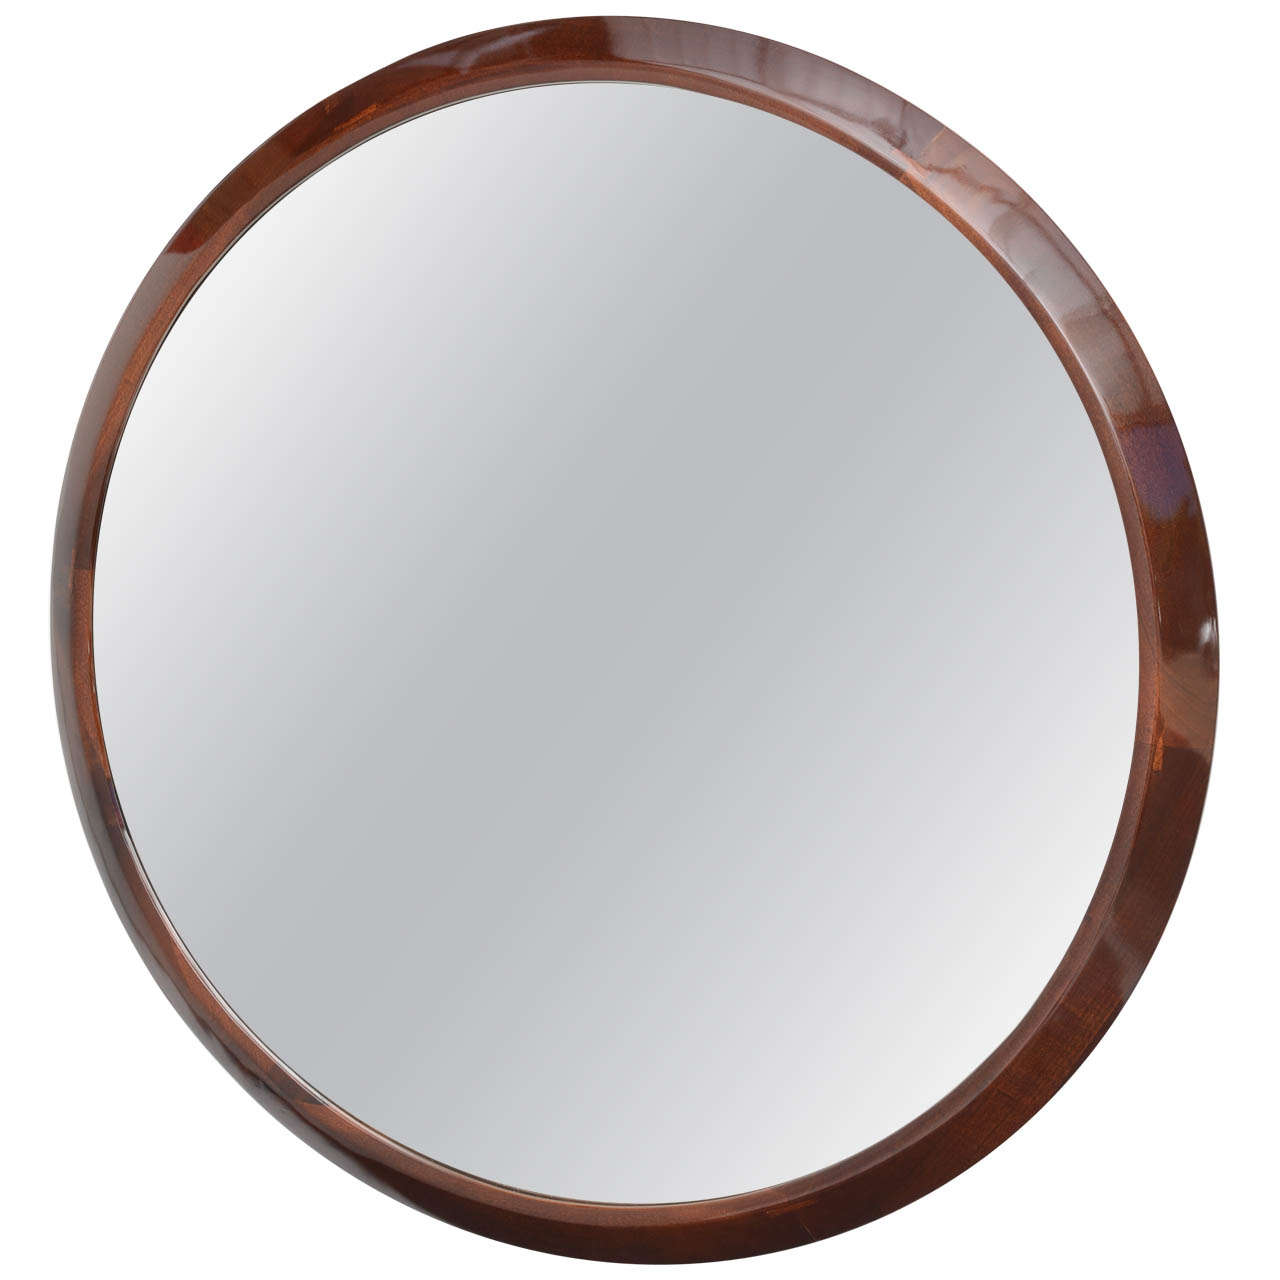 Uncategorized Wooden Round Mirrors round art deco mirror designs large french with beveled gany wood